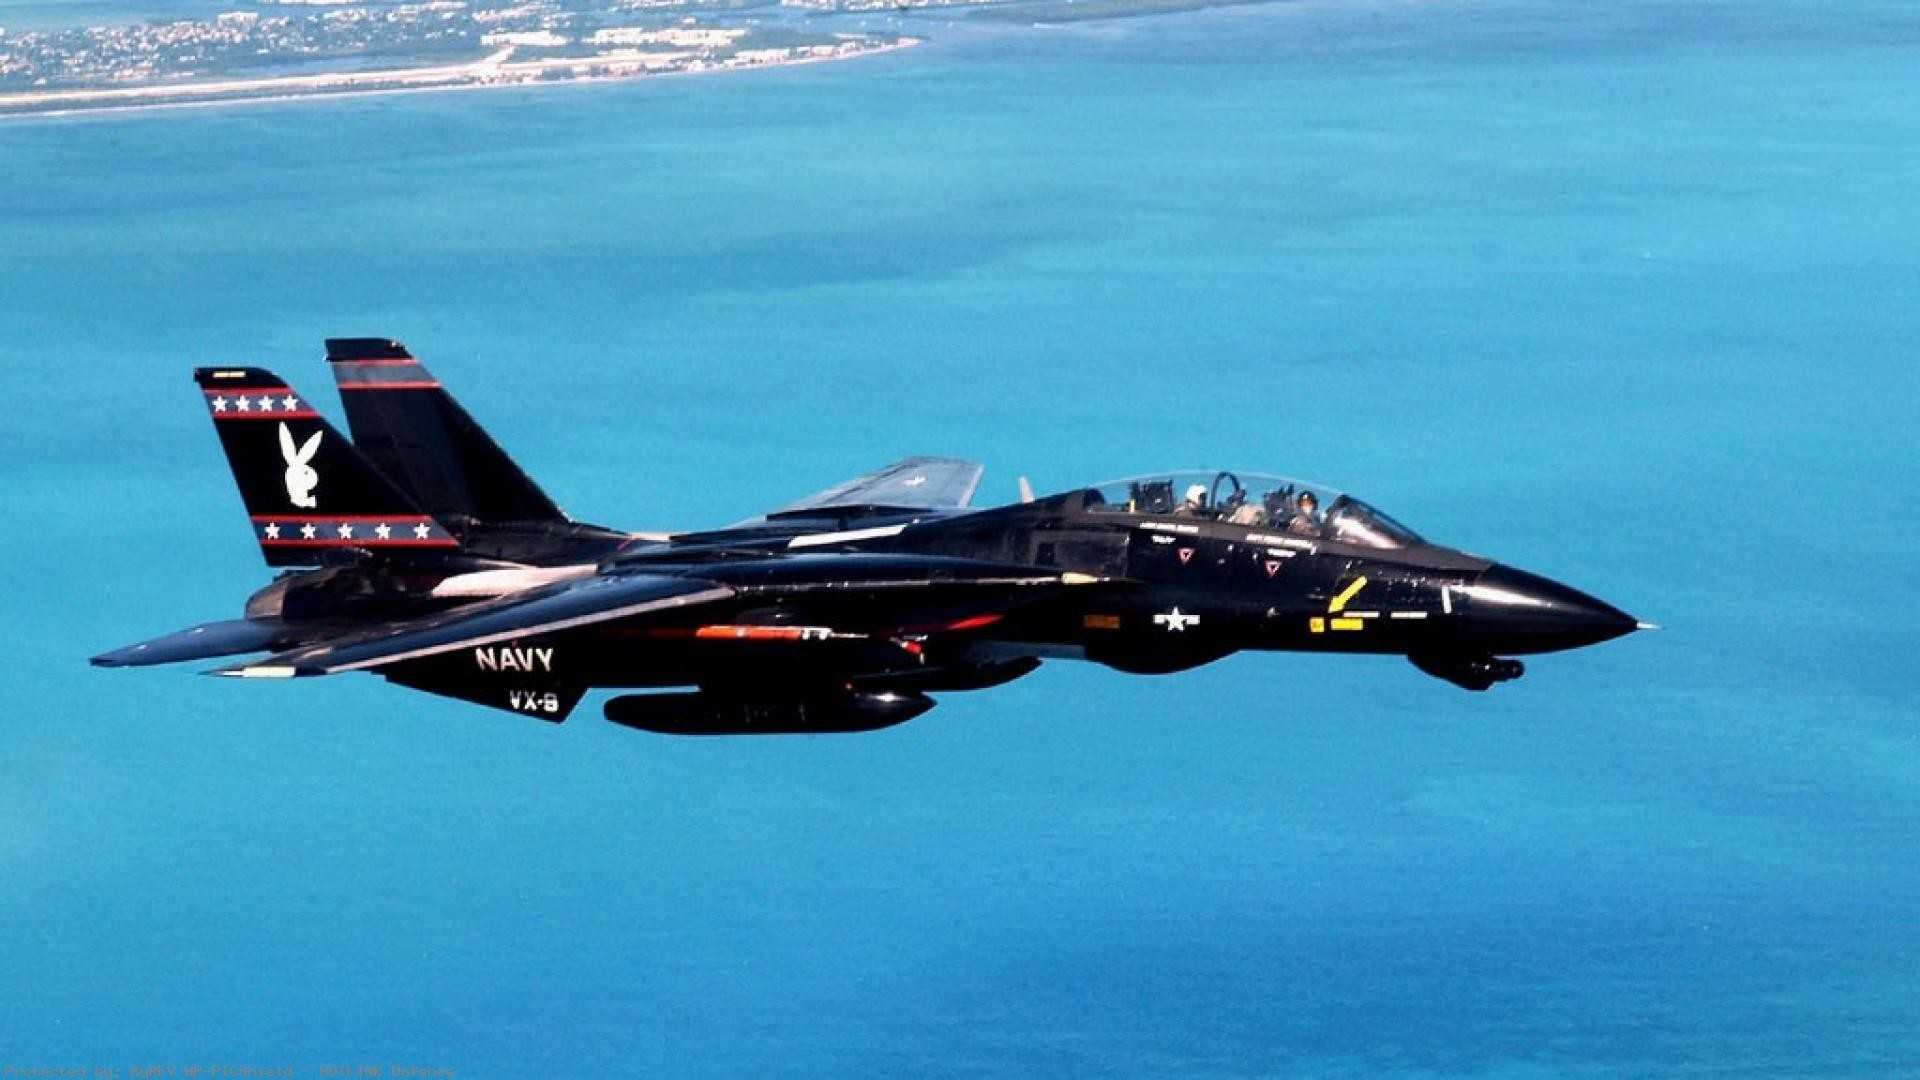 Fighter-Plane-Free-Download-wallpaper-wp3805286